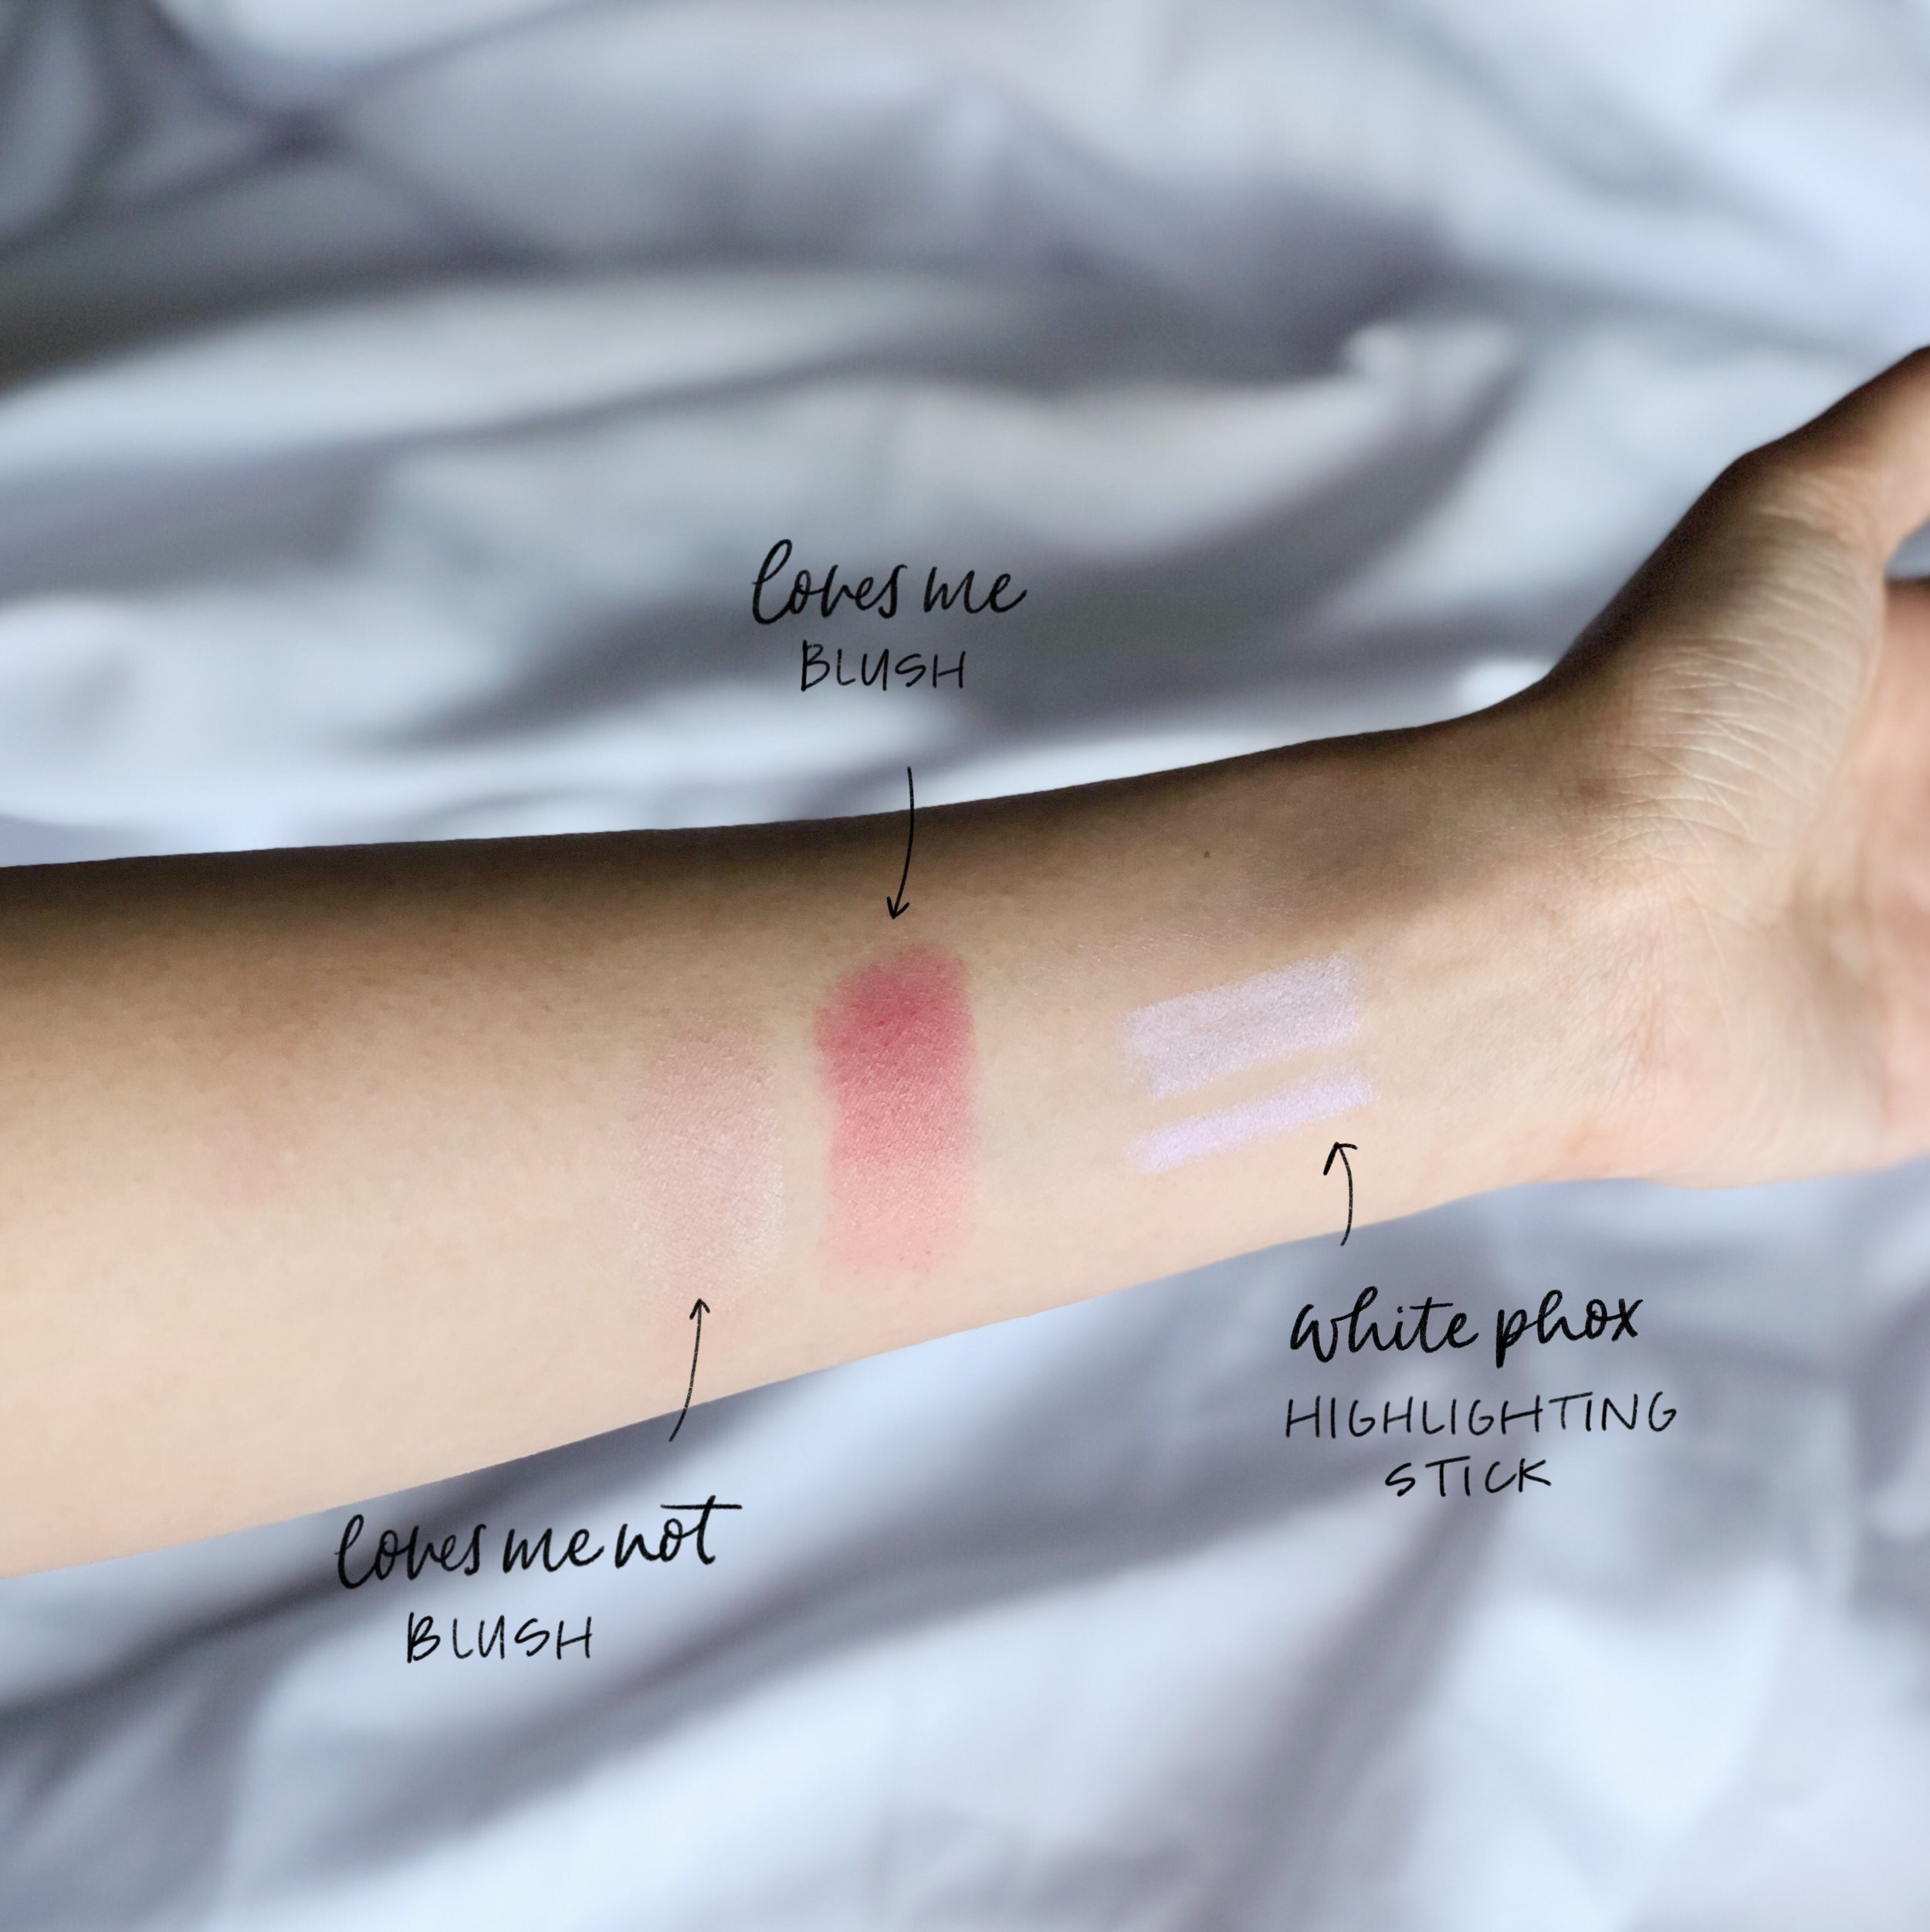 blush and highlighter swatch.JPG